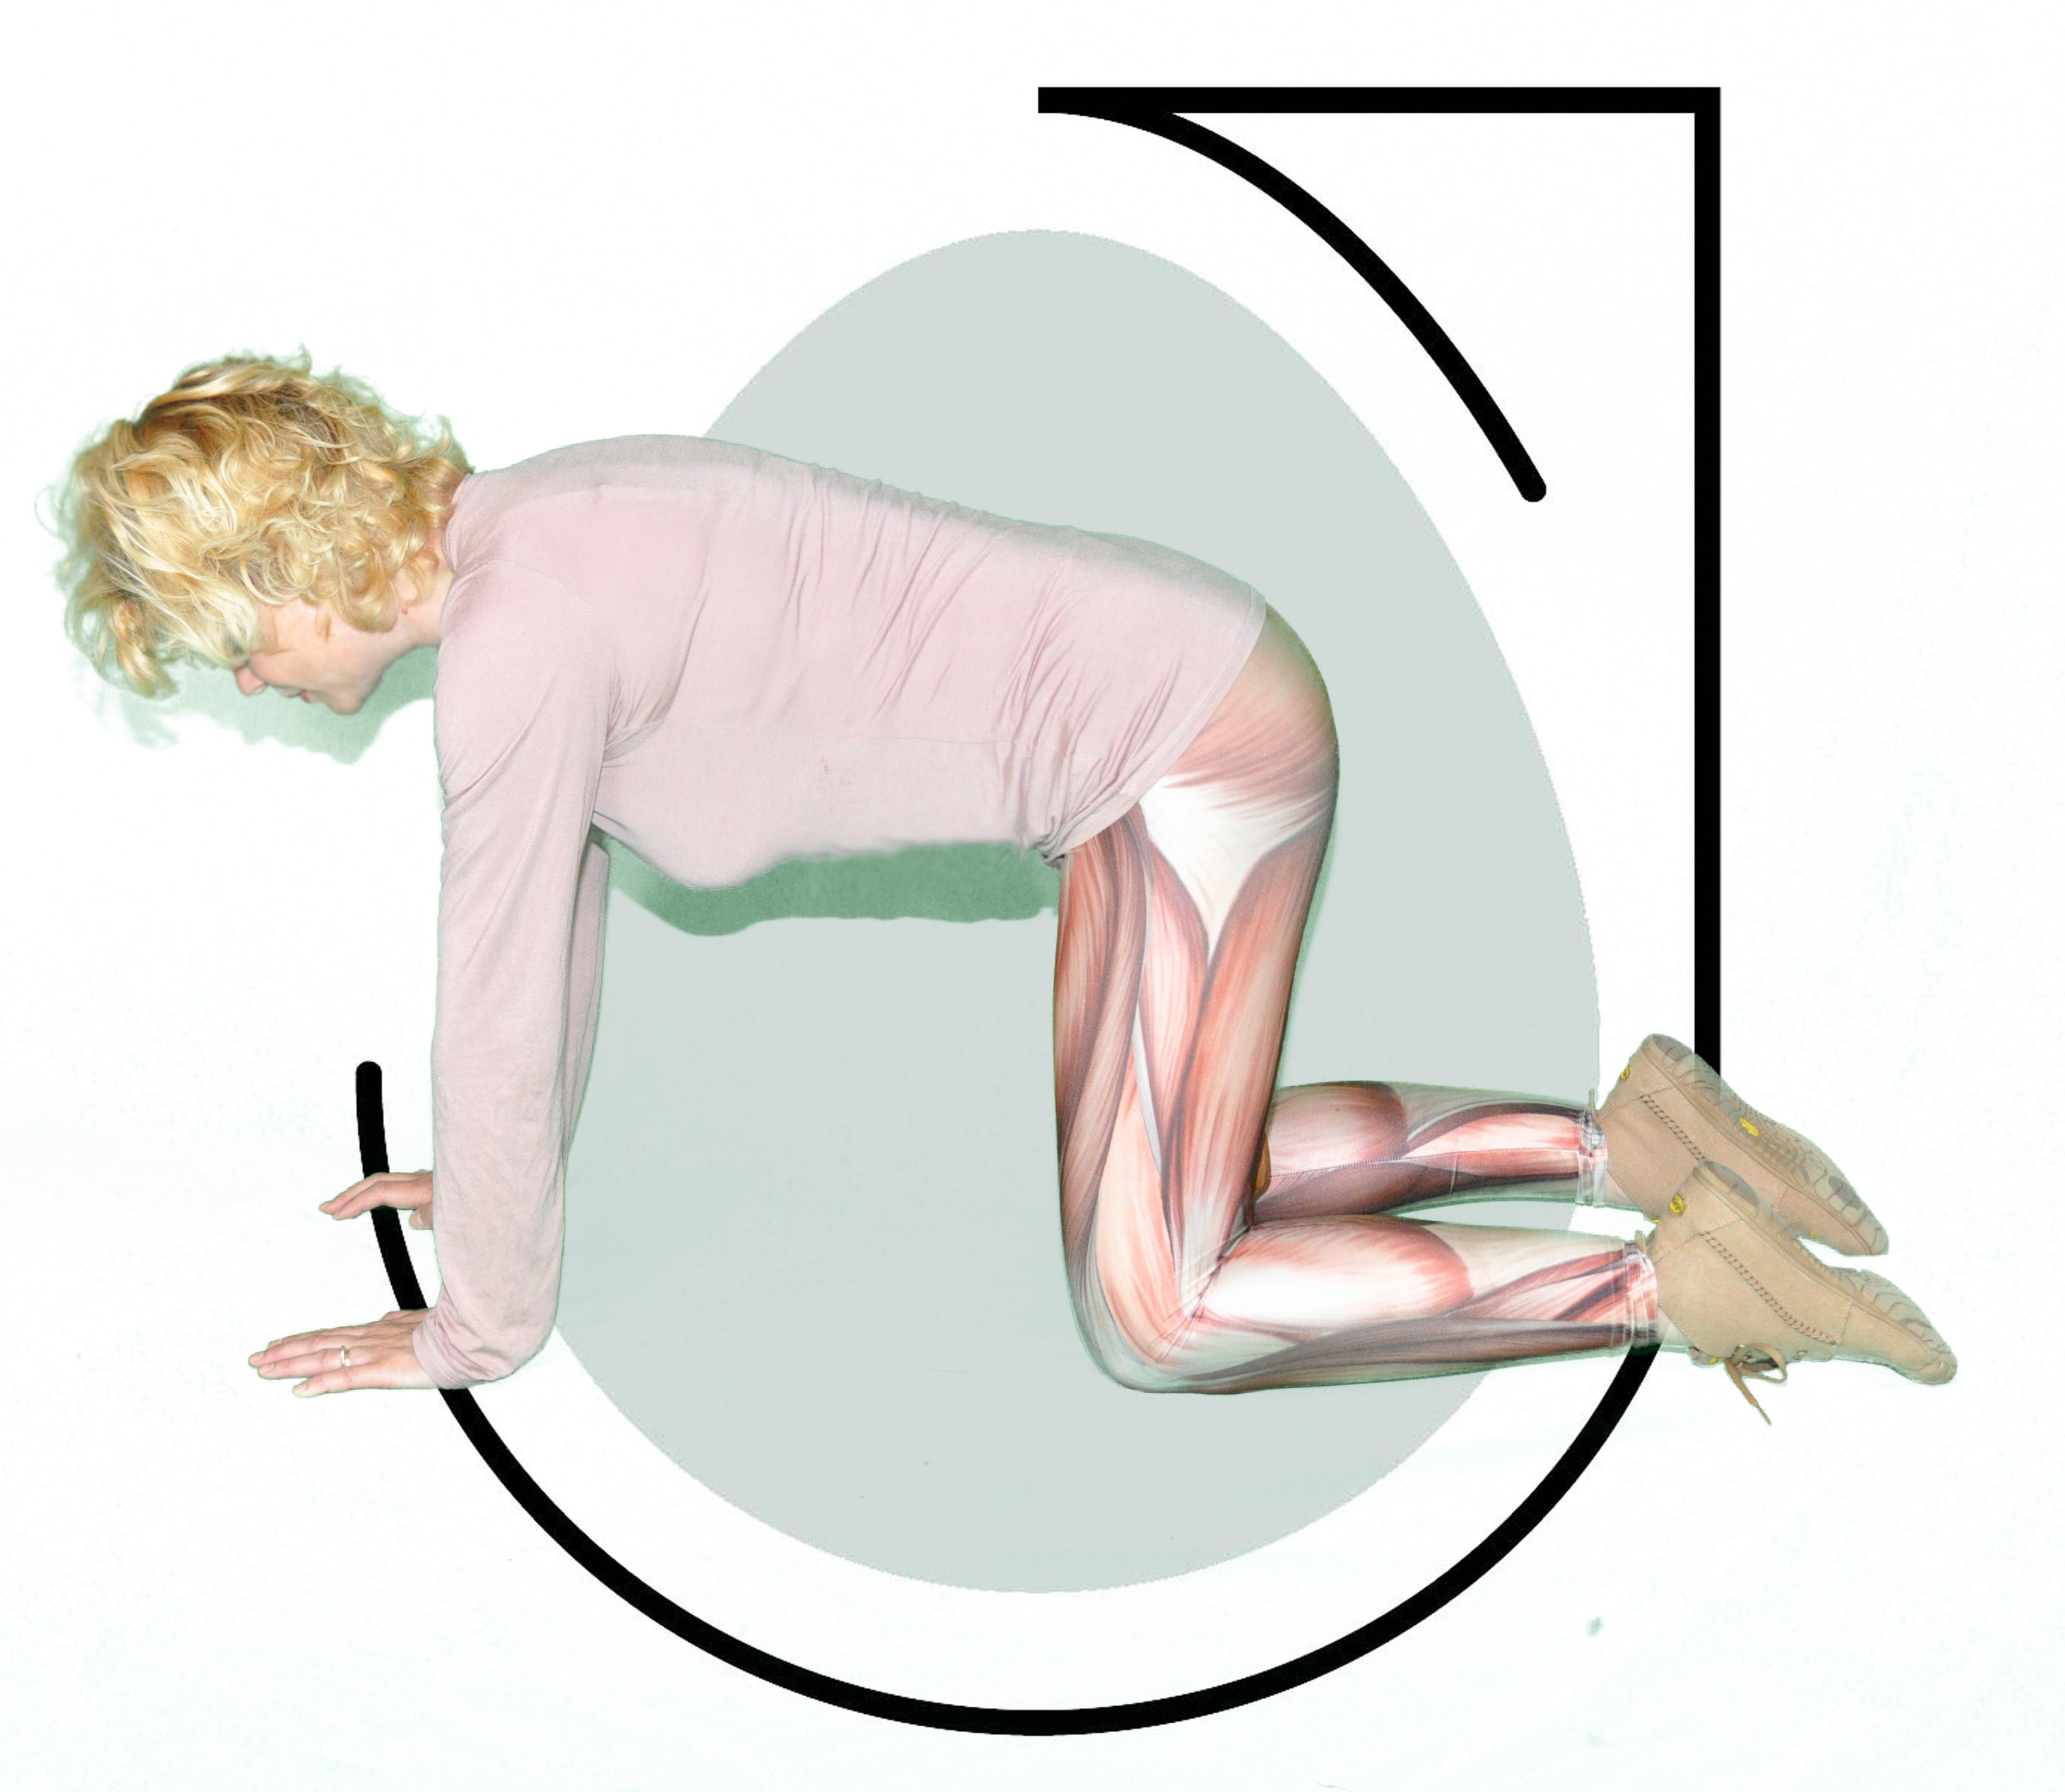 6. With hands and knees on ground and back aligned, pull up the egg, squeeze, relax a little then pull up twice swiftly and then relax back down.  Repeat 10 times.